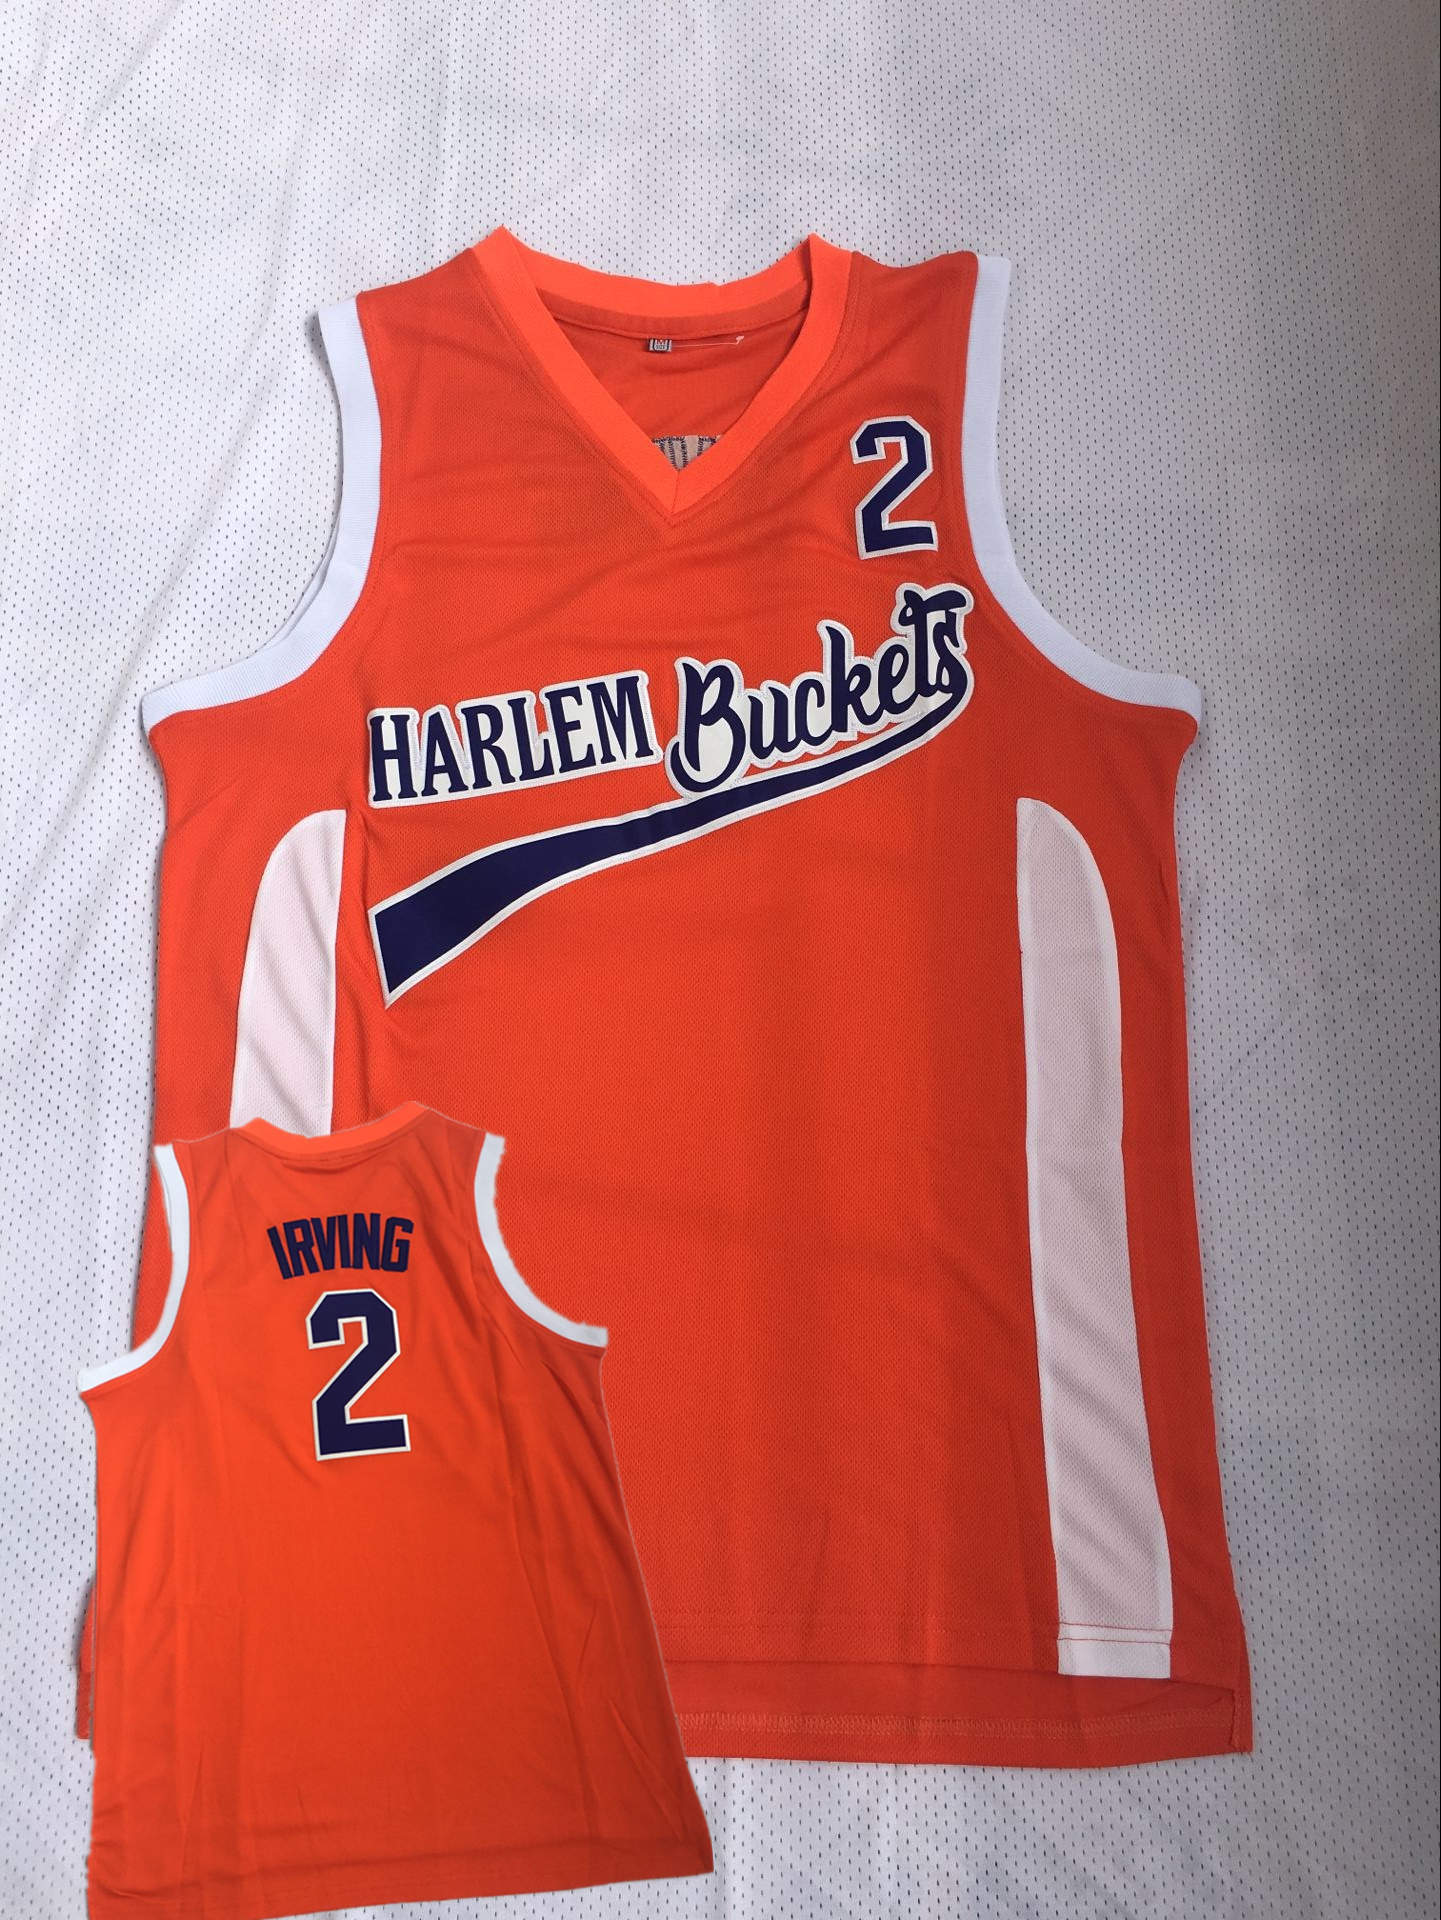 Harlem Buckets 2 Irving Orange Uncle Drew Movie Basketball Jersey